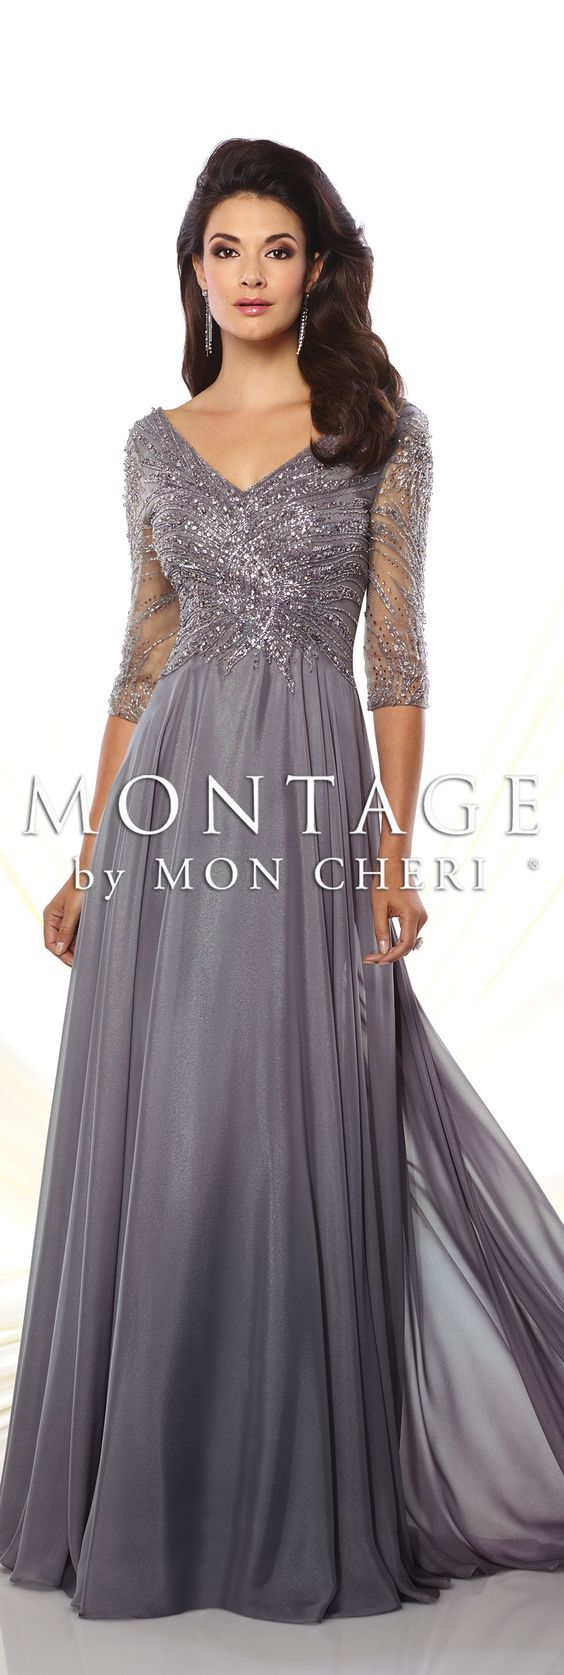 Sophisticated mother of the bride dresses by mon cheri spring